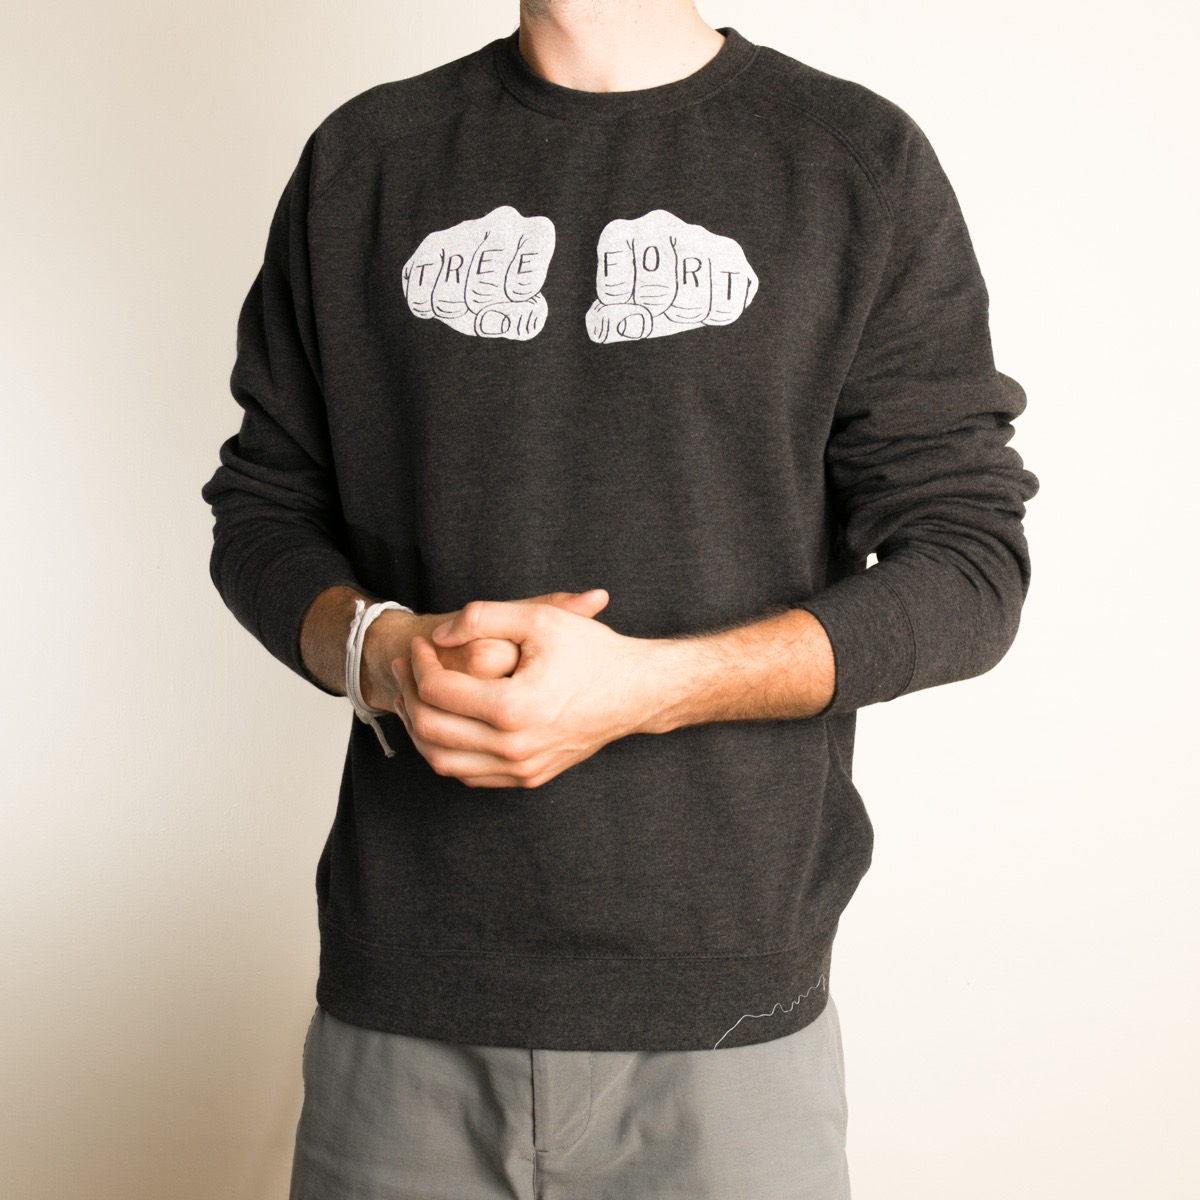 Fist Bump Sweatshirt